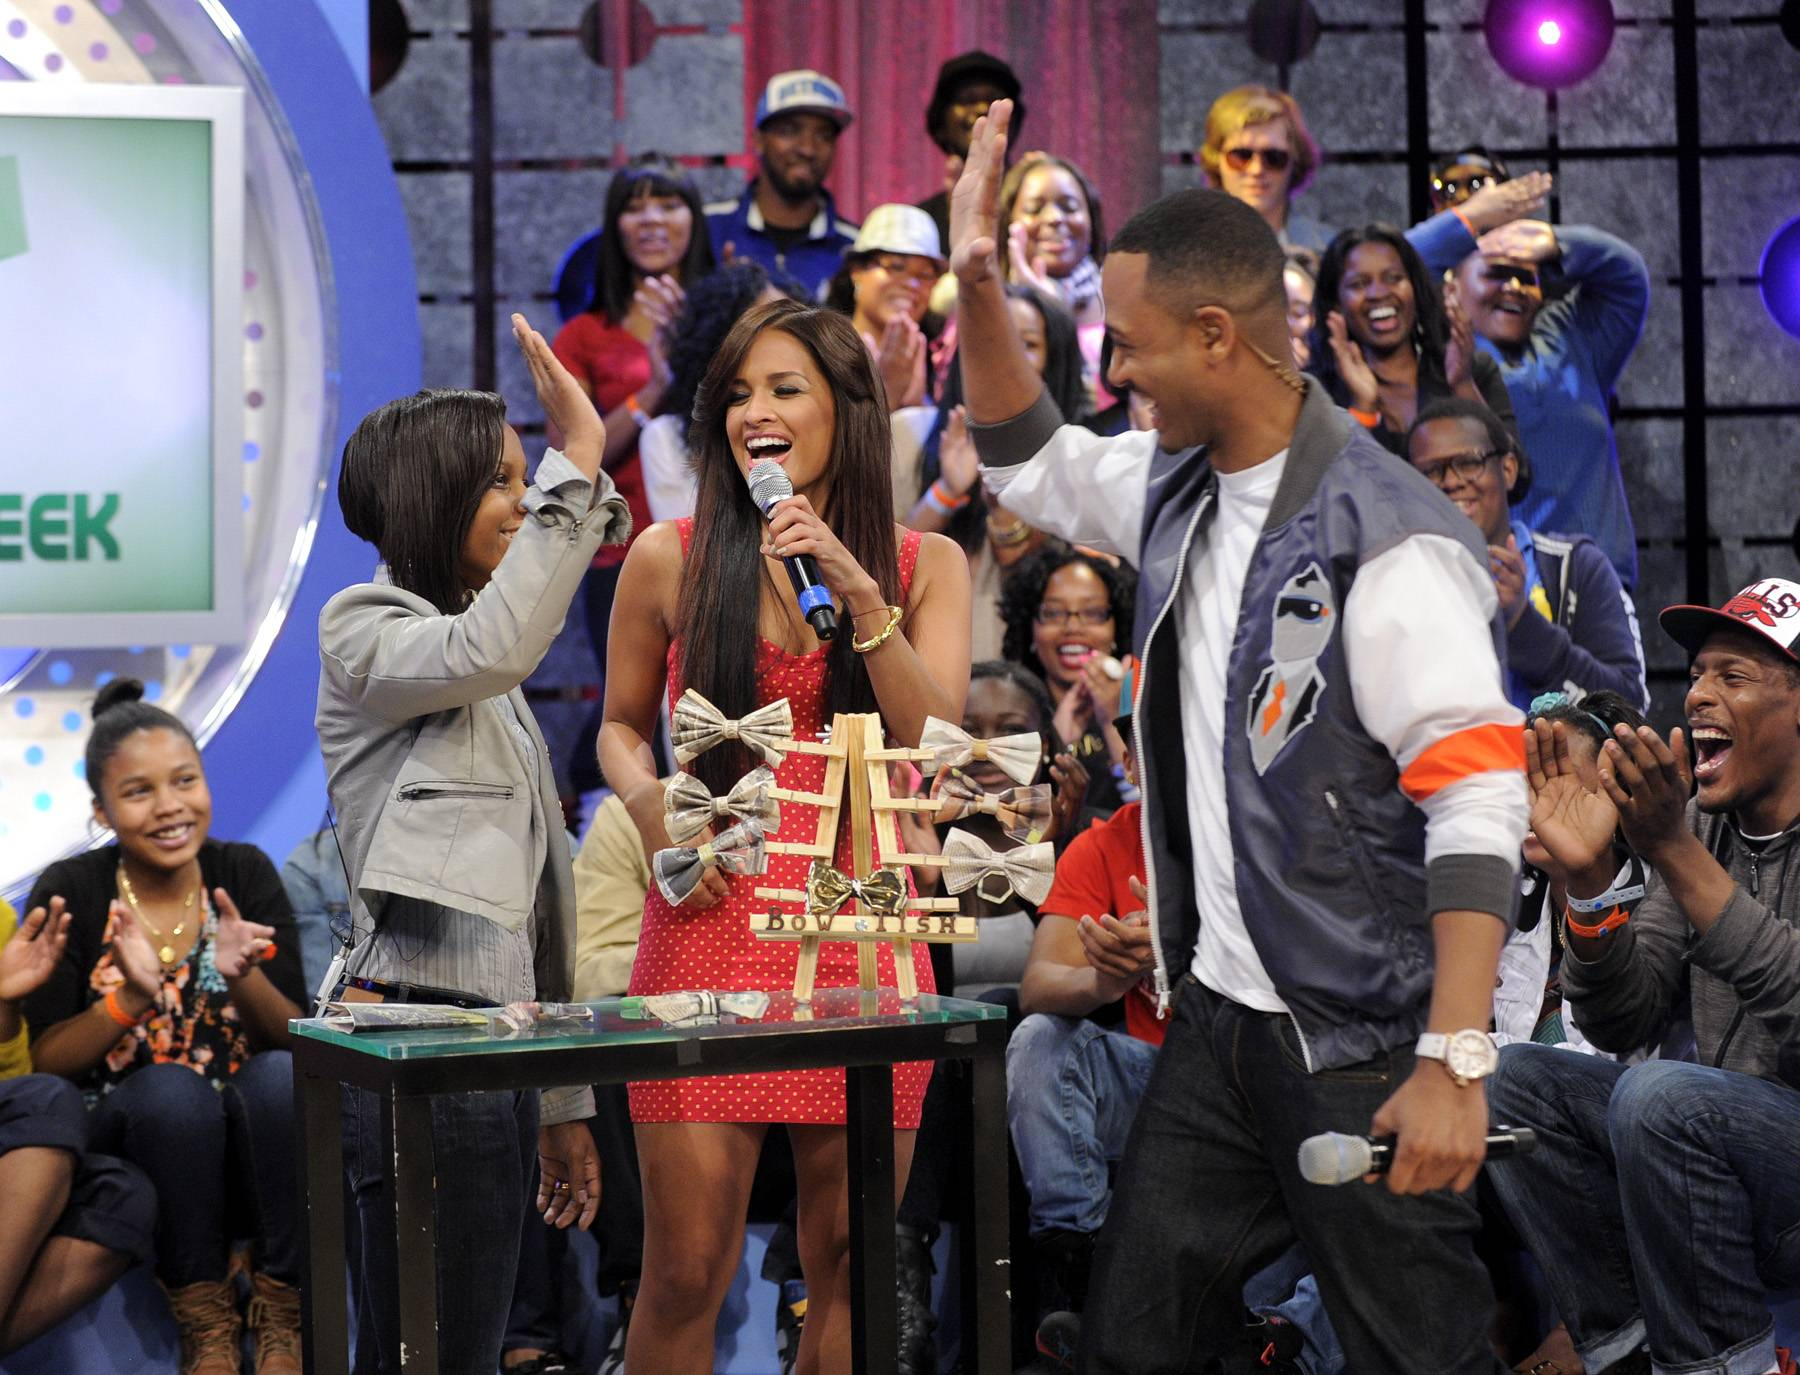 High Five For Bow Ties - Tisha Johnson receives a high five from Rocsi Diaz and Terrence J and is told she would make a great field correspondent for the show at 106 & Park, May 3, 2012. (Photo by: John Ricard / BET)